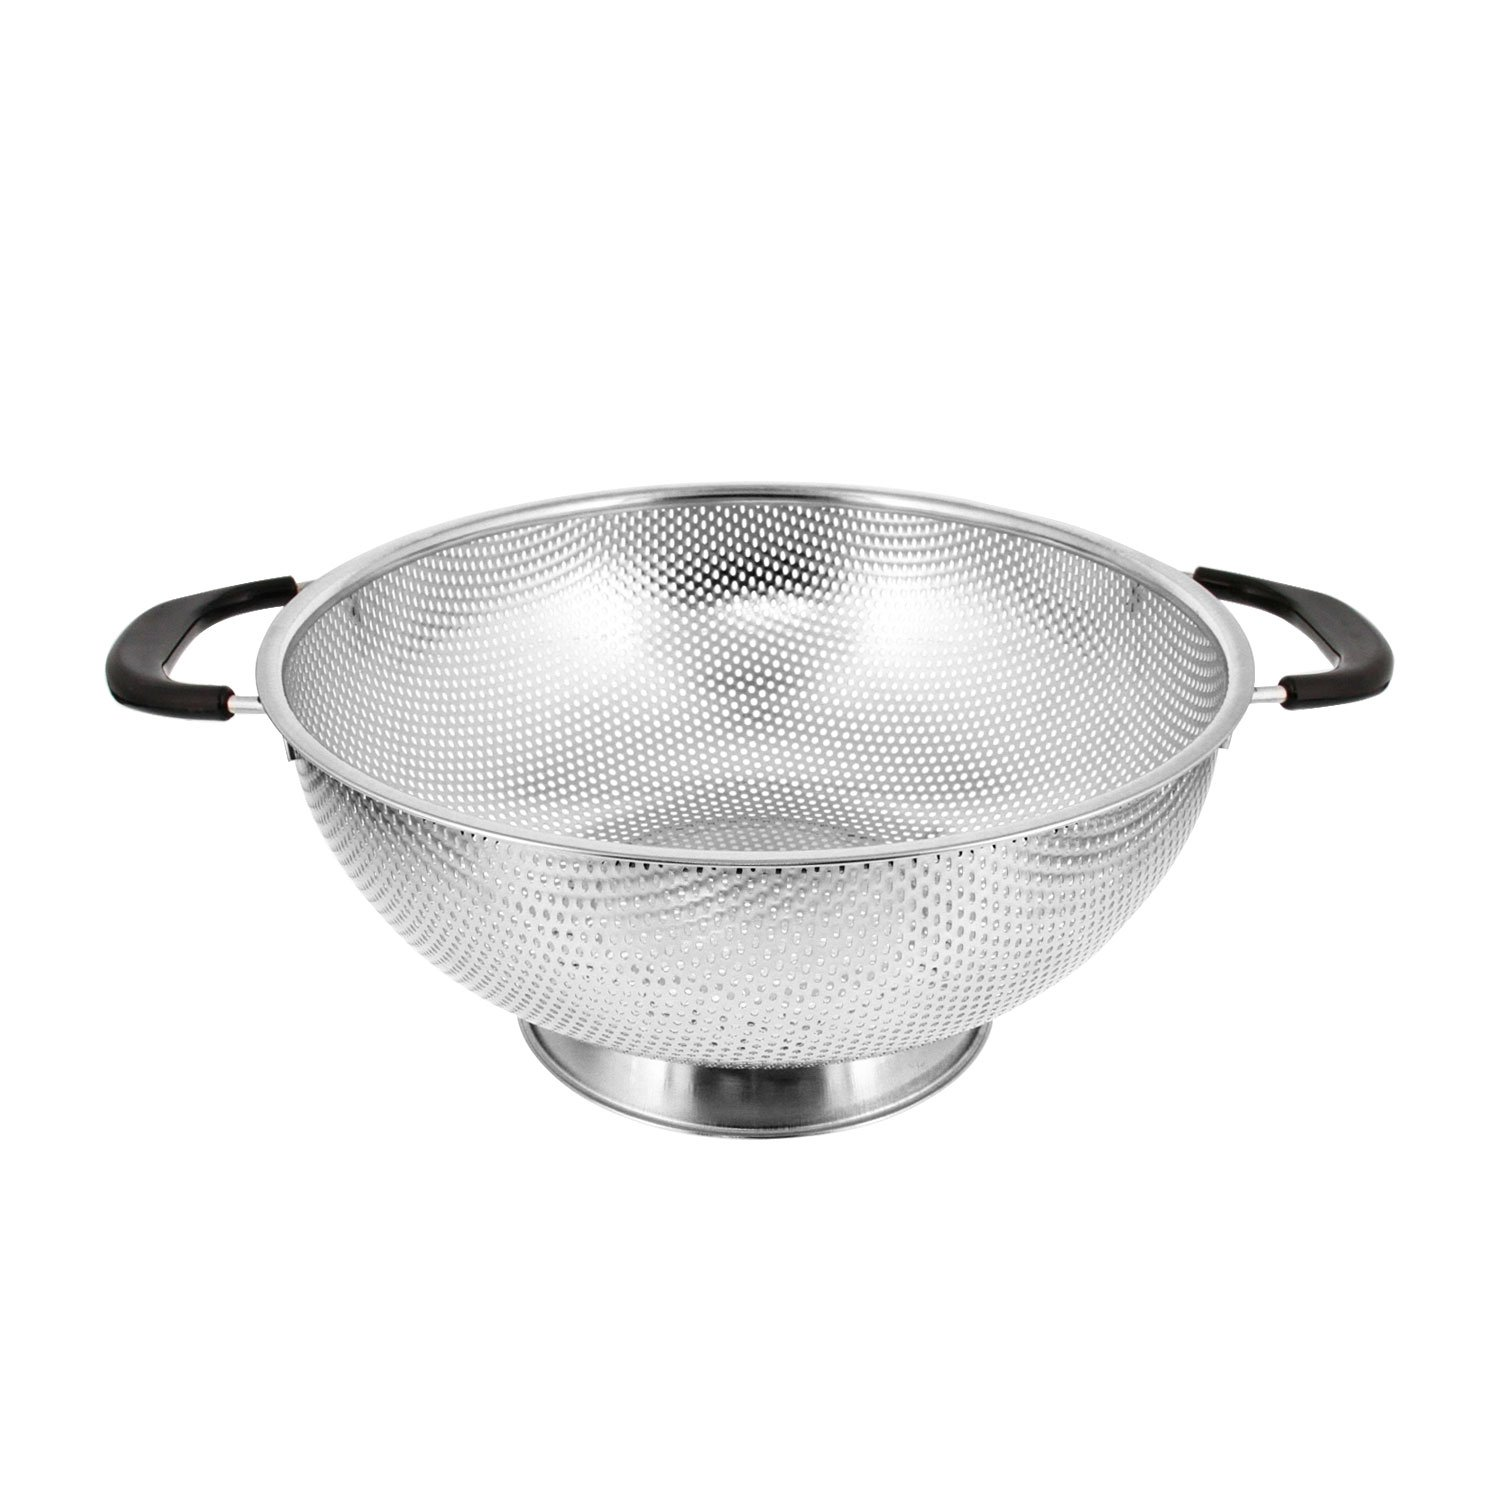 U.S. Kitchen Supply 5 Quart 11'' Stainless Steel Micro Perforated Colander Strainer Basket with Coated Heat Resistant Wide Handles - Bowl to Strain, Drain, Rinse, Steam or Cook Vegetables & Pasta